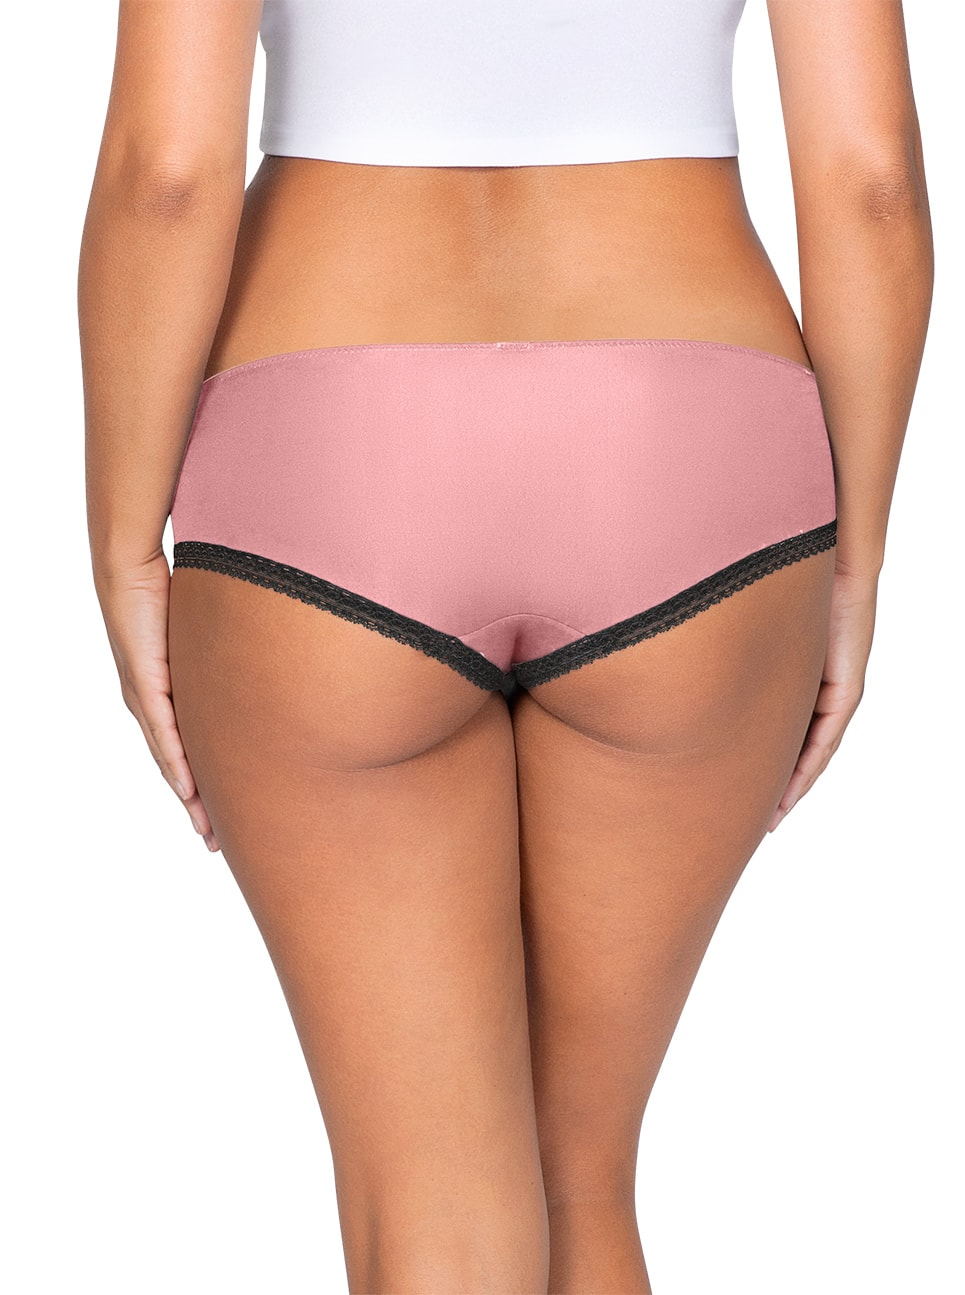 ParfaitPanty Solovely Thong PP401 D PinkBack - So Lovely Thong Quartz Pink PP401